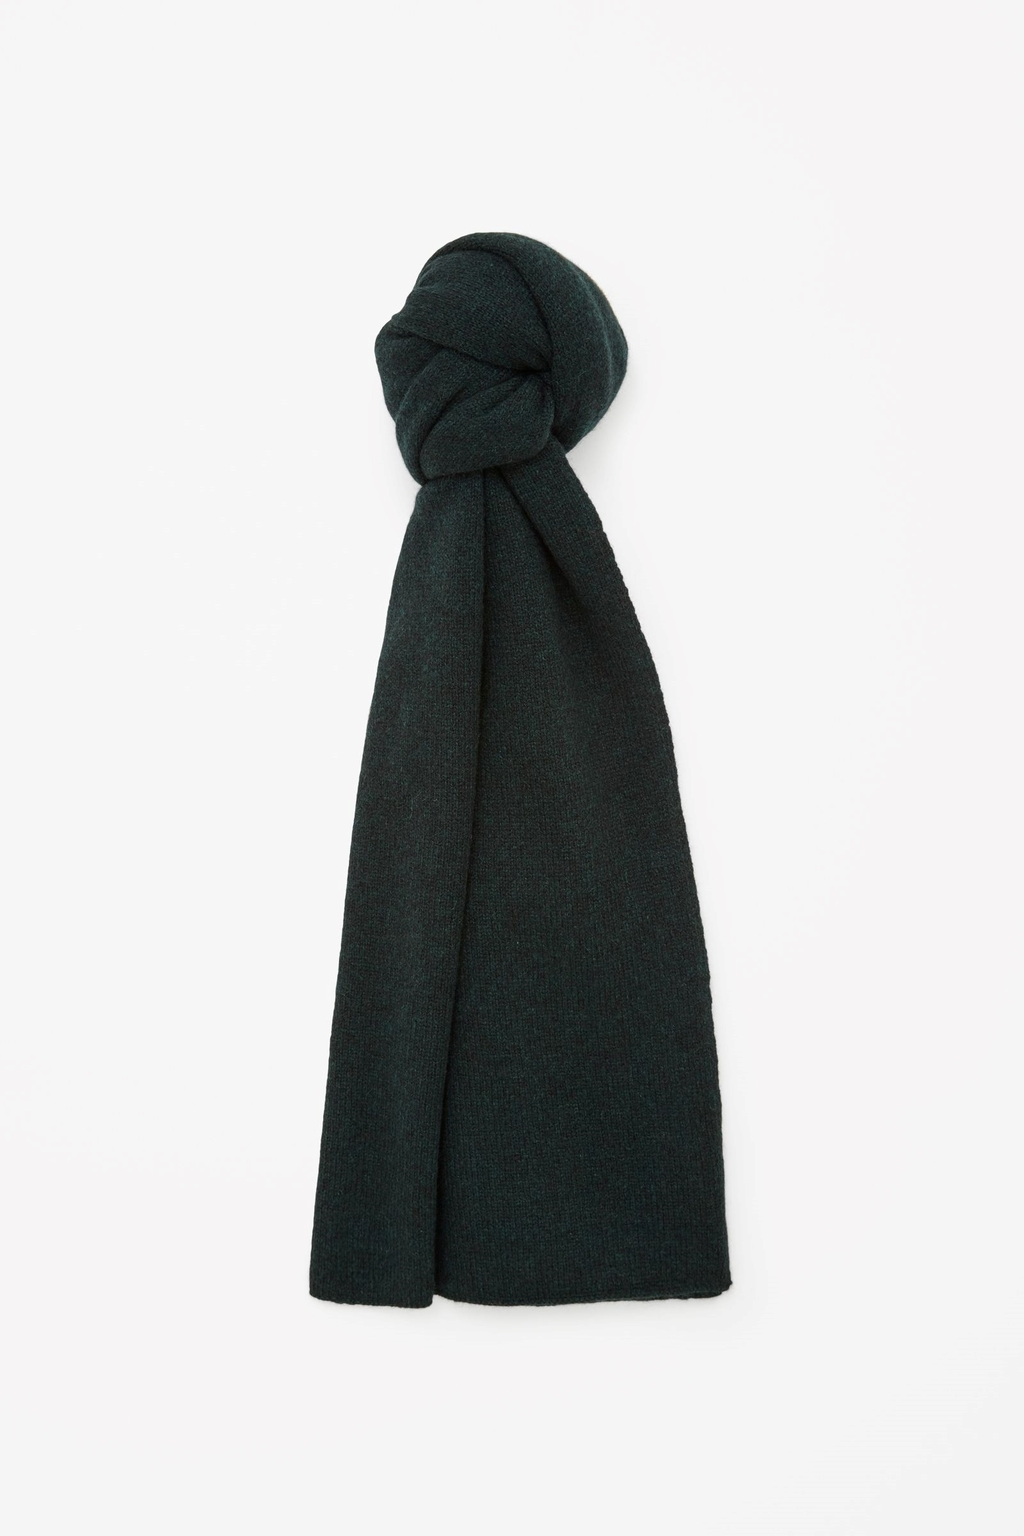 Cashmere Scarf - predominant colour: dark green; occasions: casual; style: regular; size: standard; pattern: plain; material: cashmere; season: a/w 2015